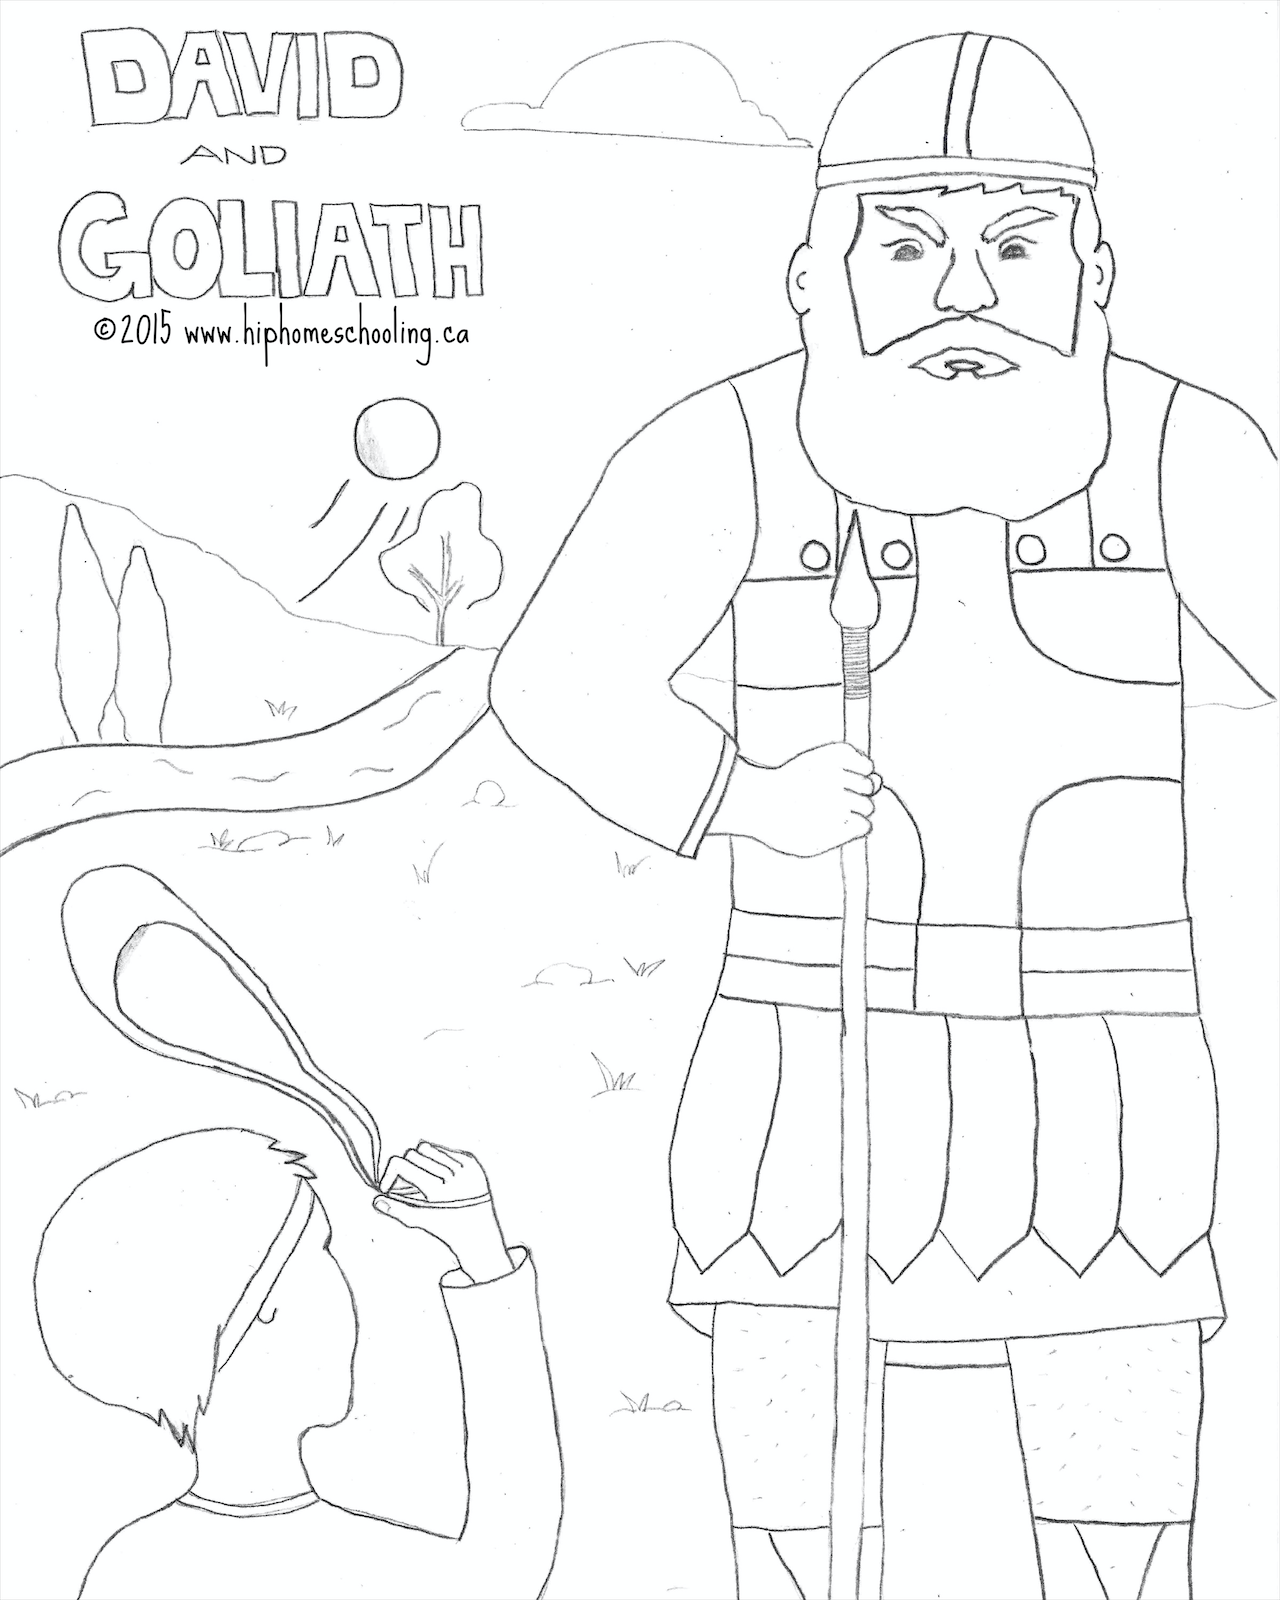 David And Goliath Free Coloring Sheet And Lesson Plan